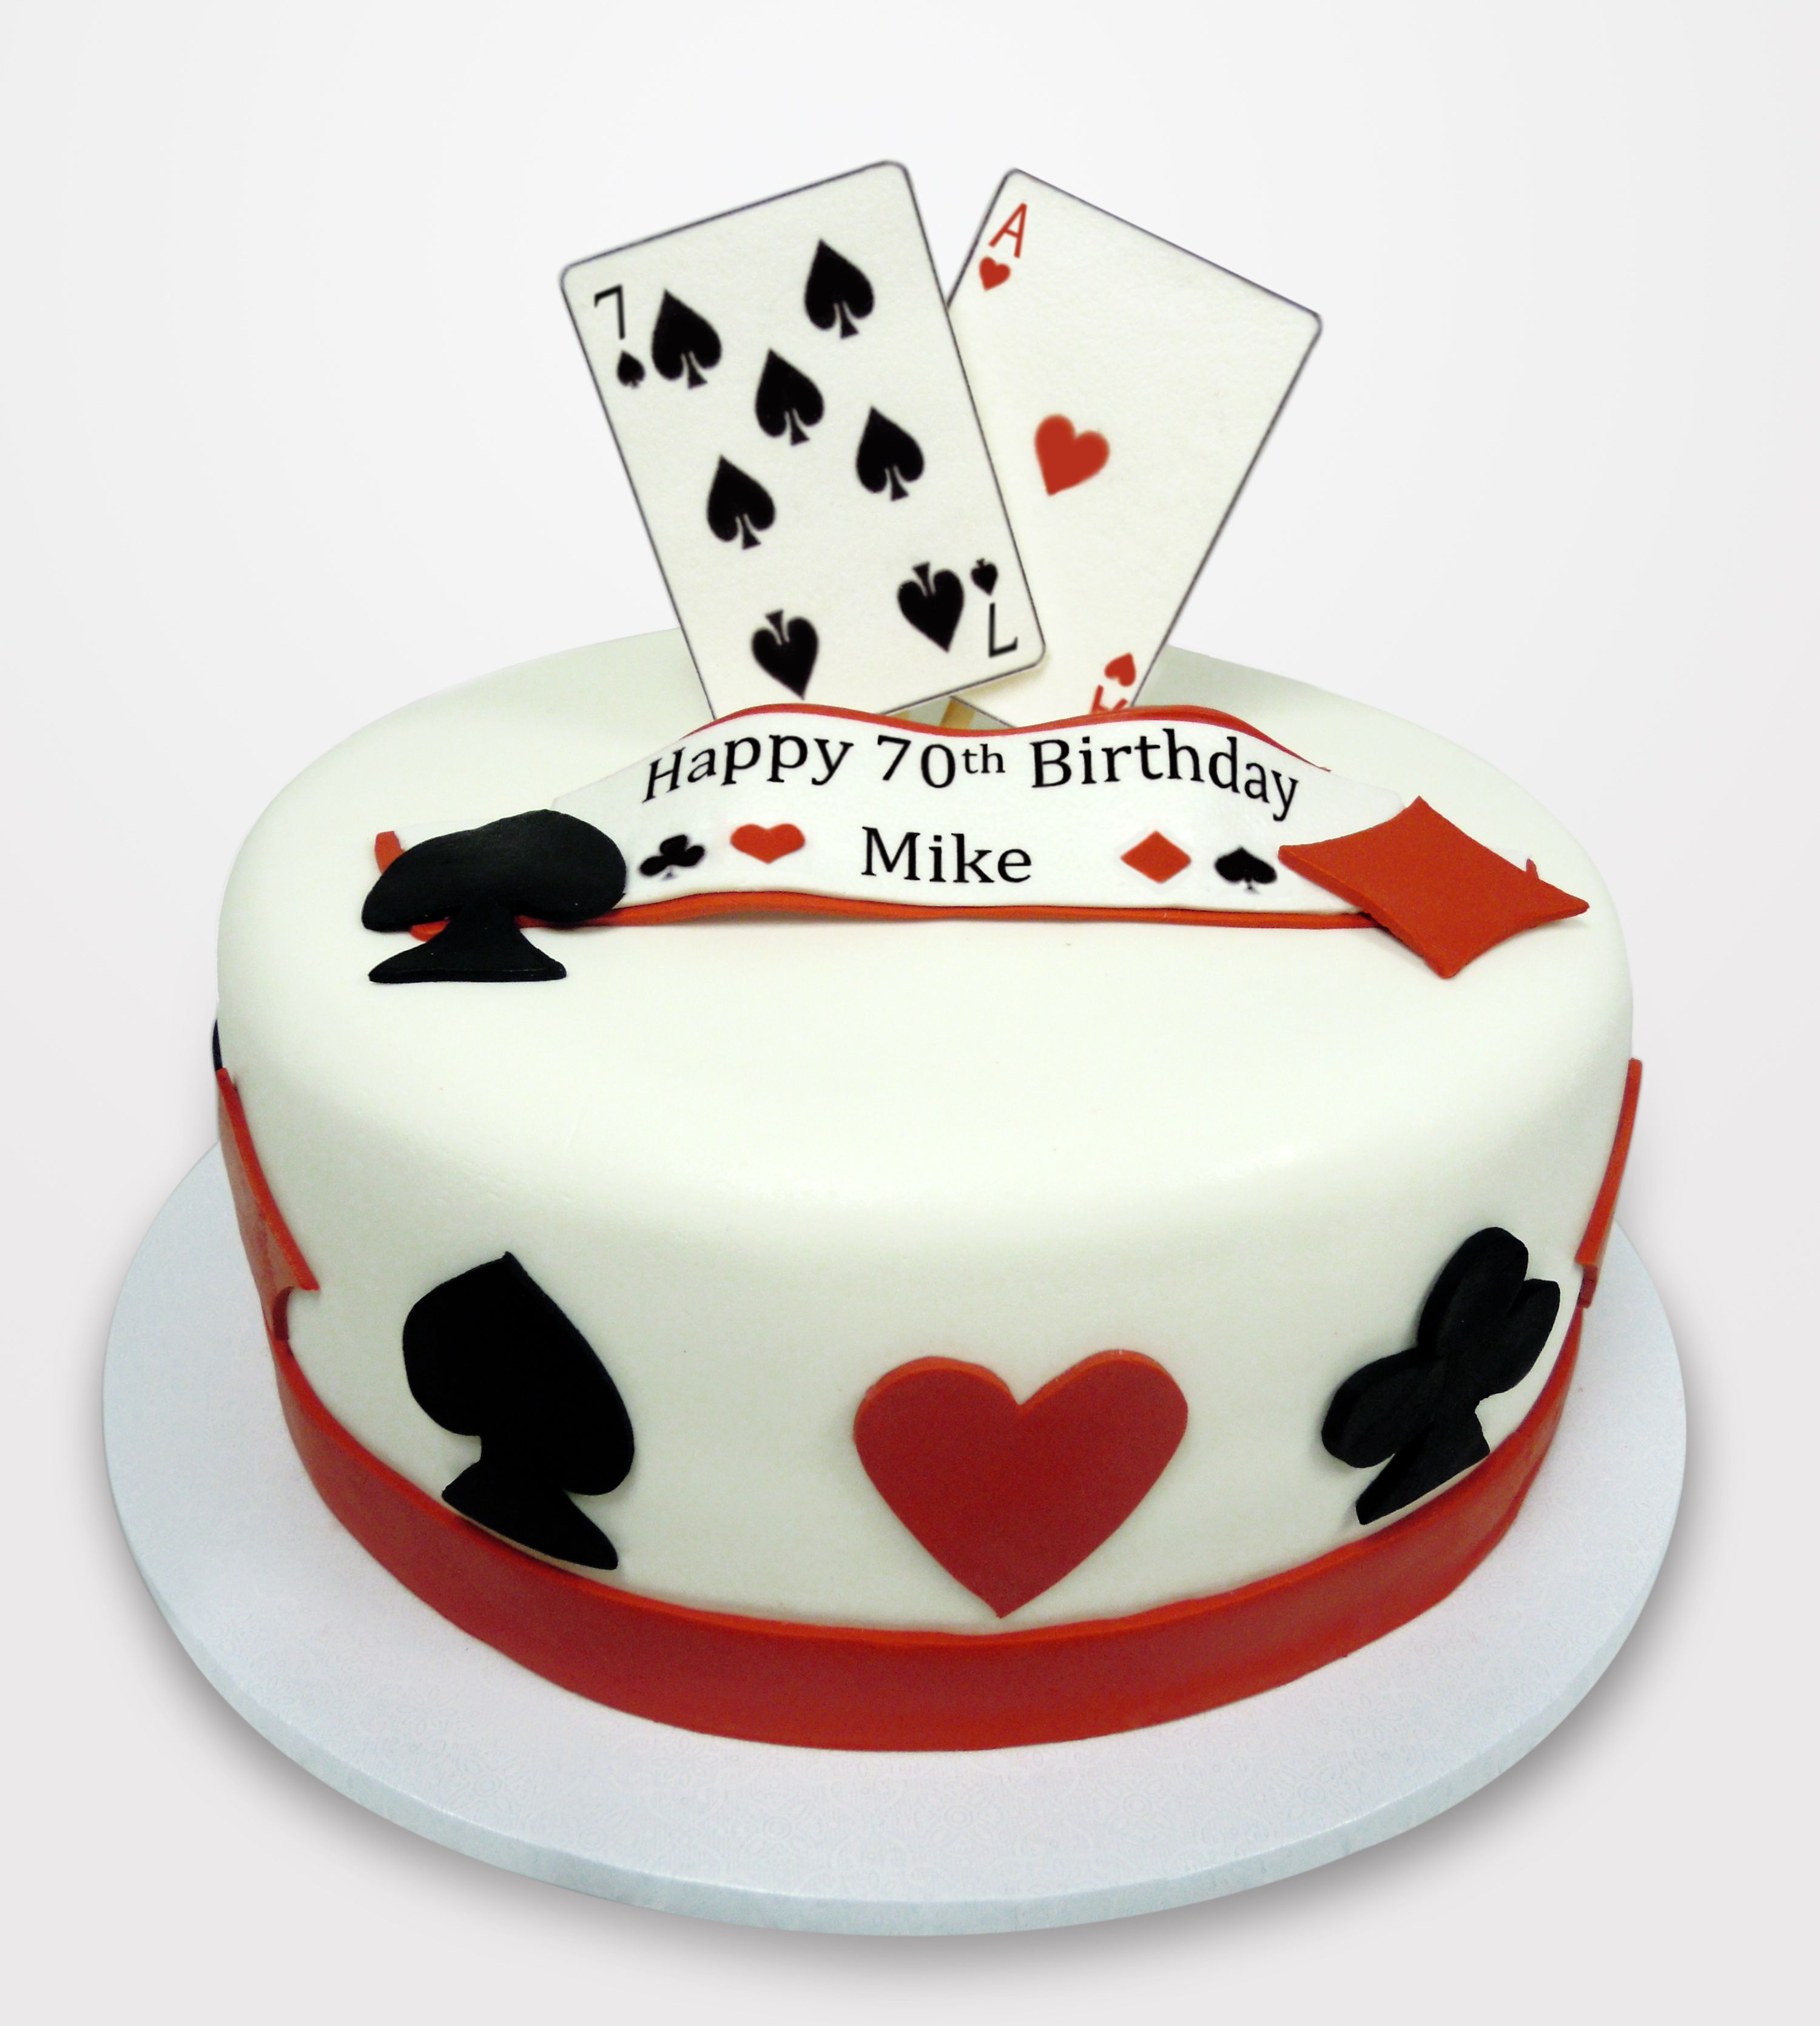 Playing Card Themed Cake By Casey's Cupcakes